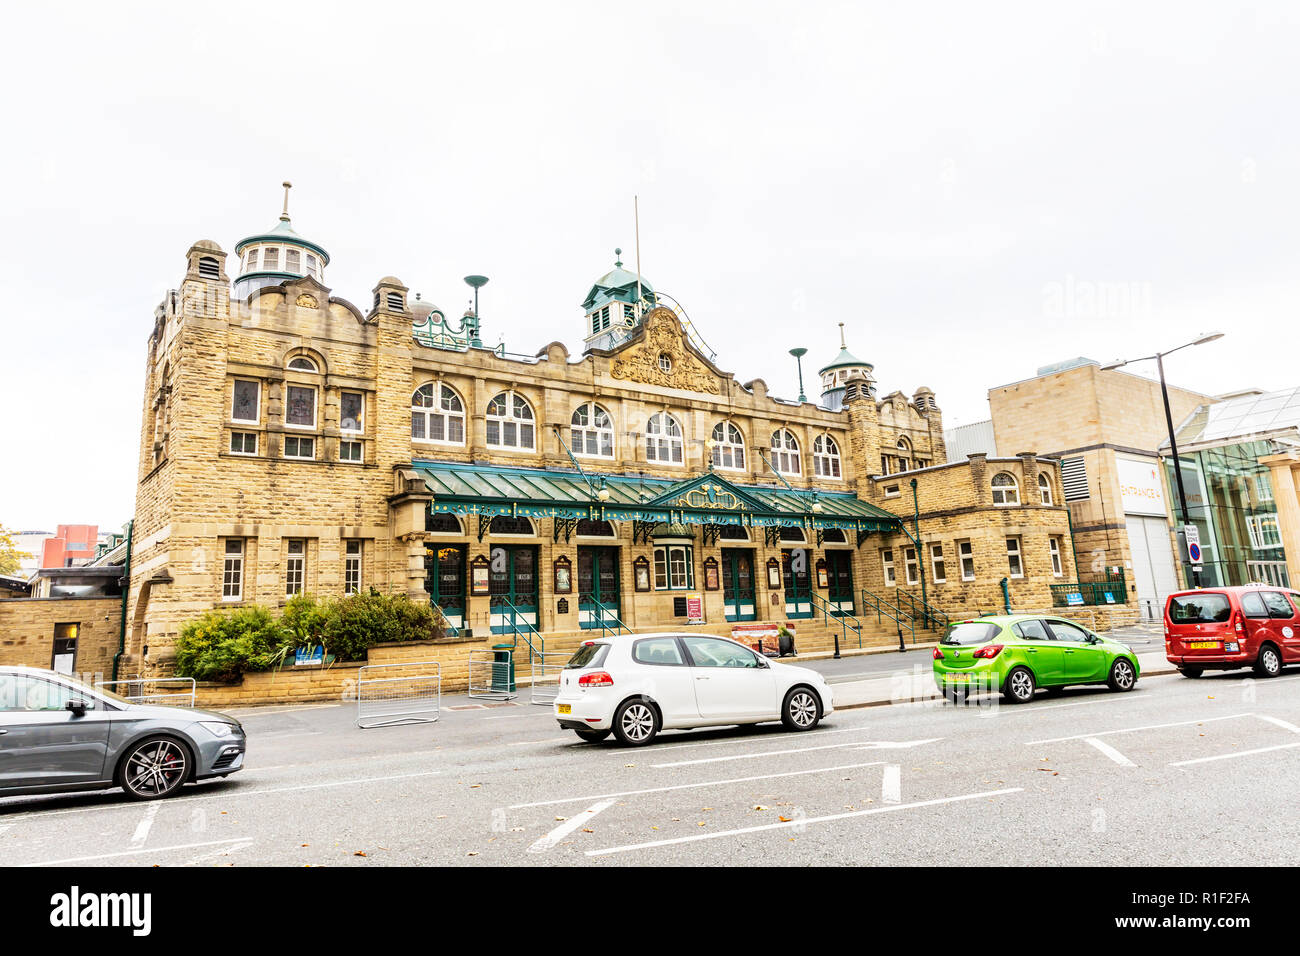 Royal Hall Harrogate town centre Yorkshire UK England, The Royal Hall, Grade II listed building, theatre, theatres, The Royal Hall Harrogate, building - Stock Image